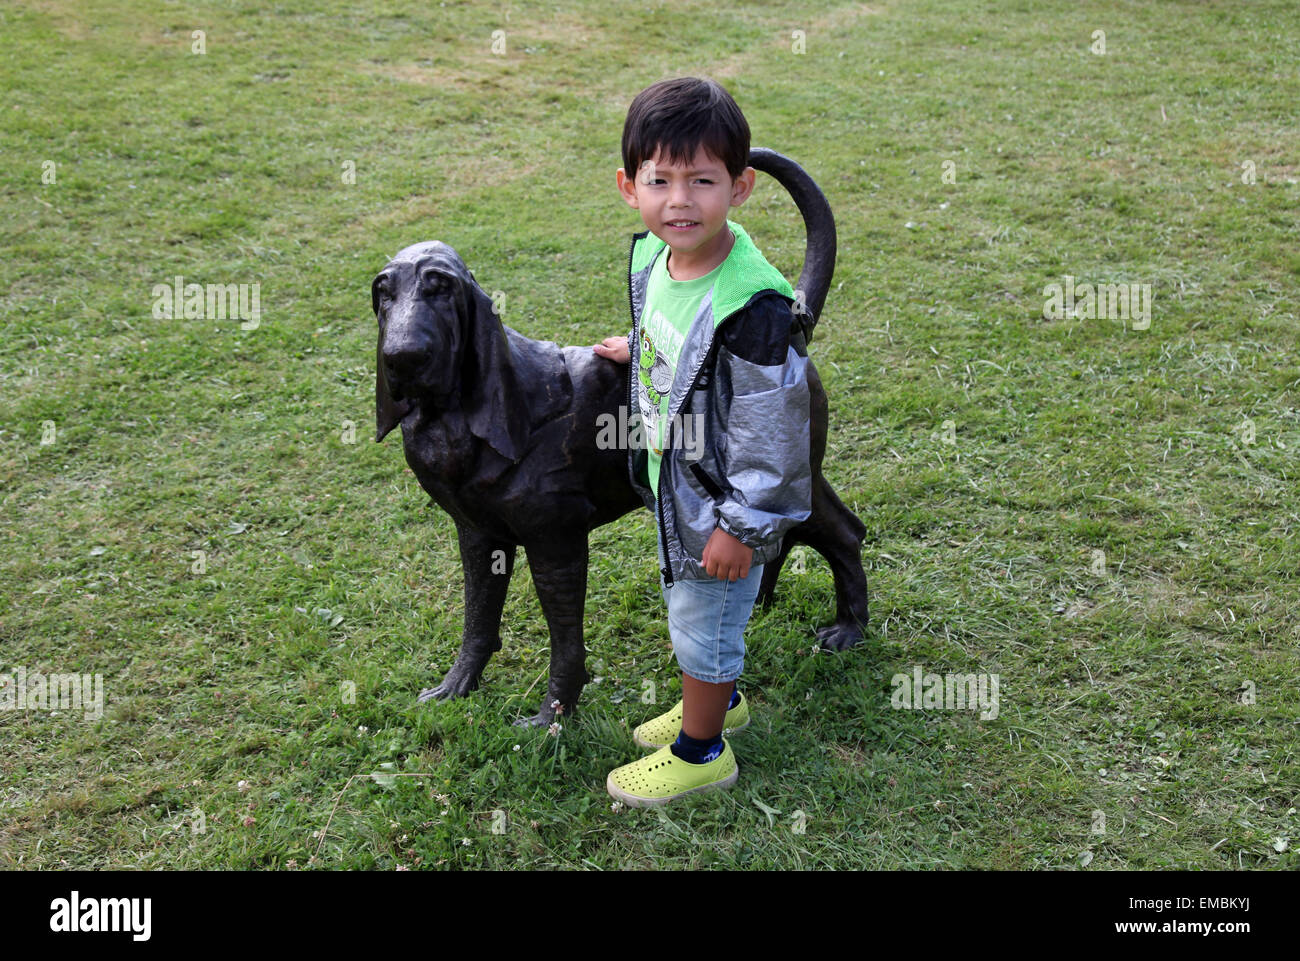 It's a photo of a kid with a black dog statue in a park or garden - Stock Image